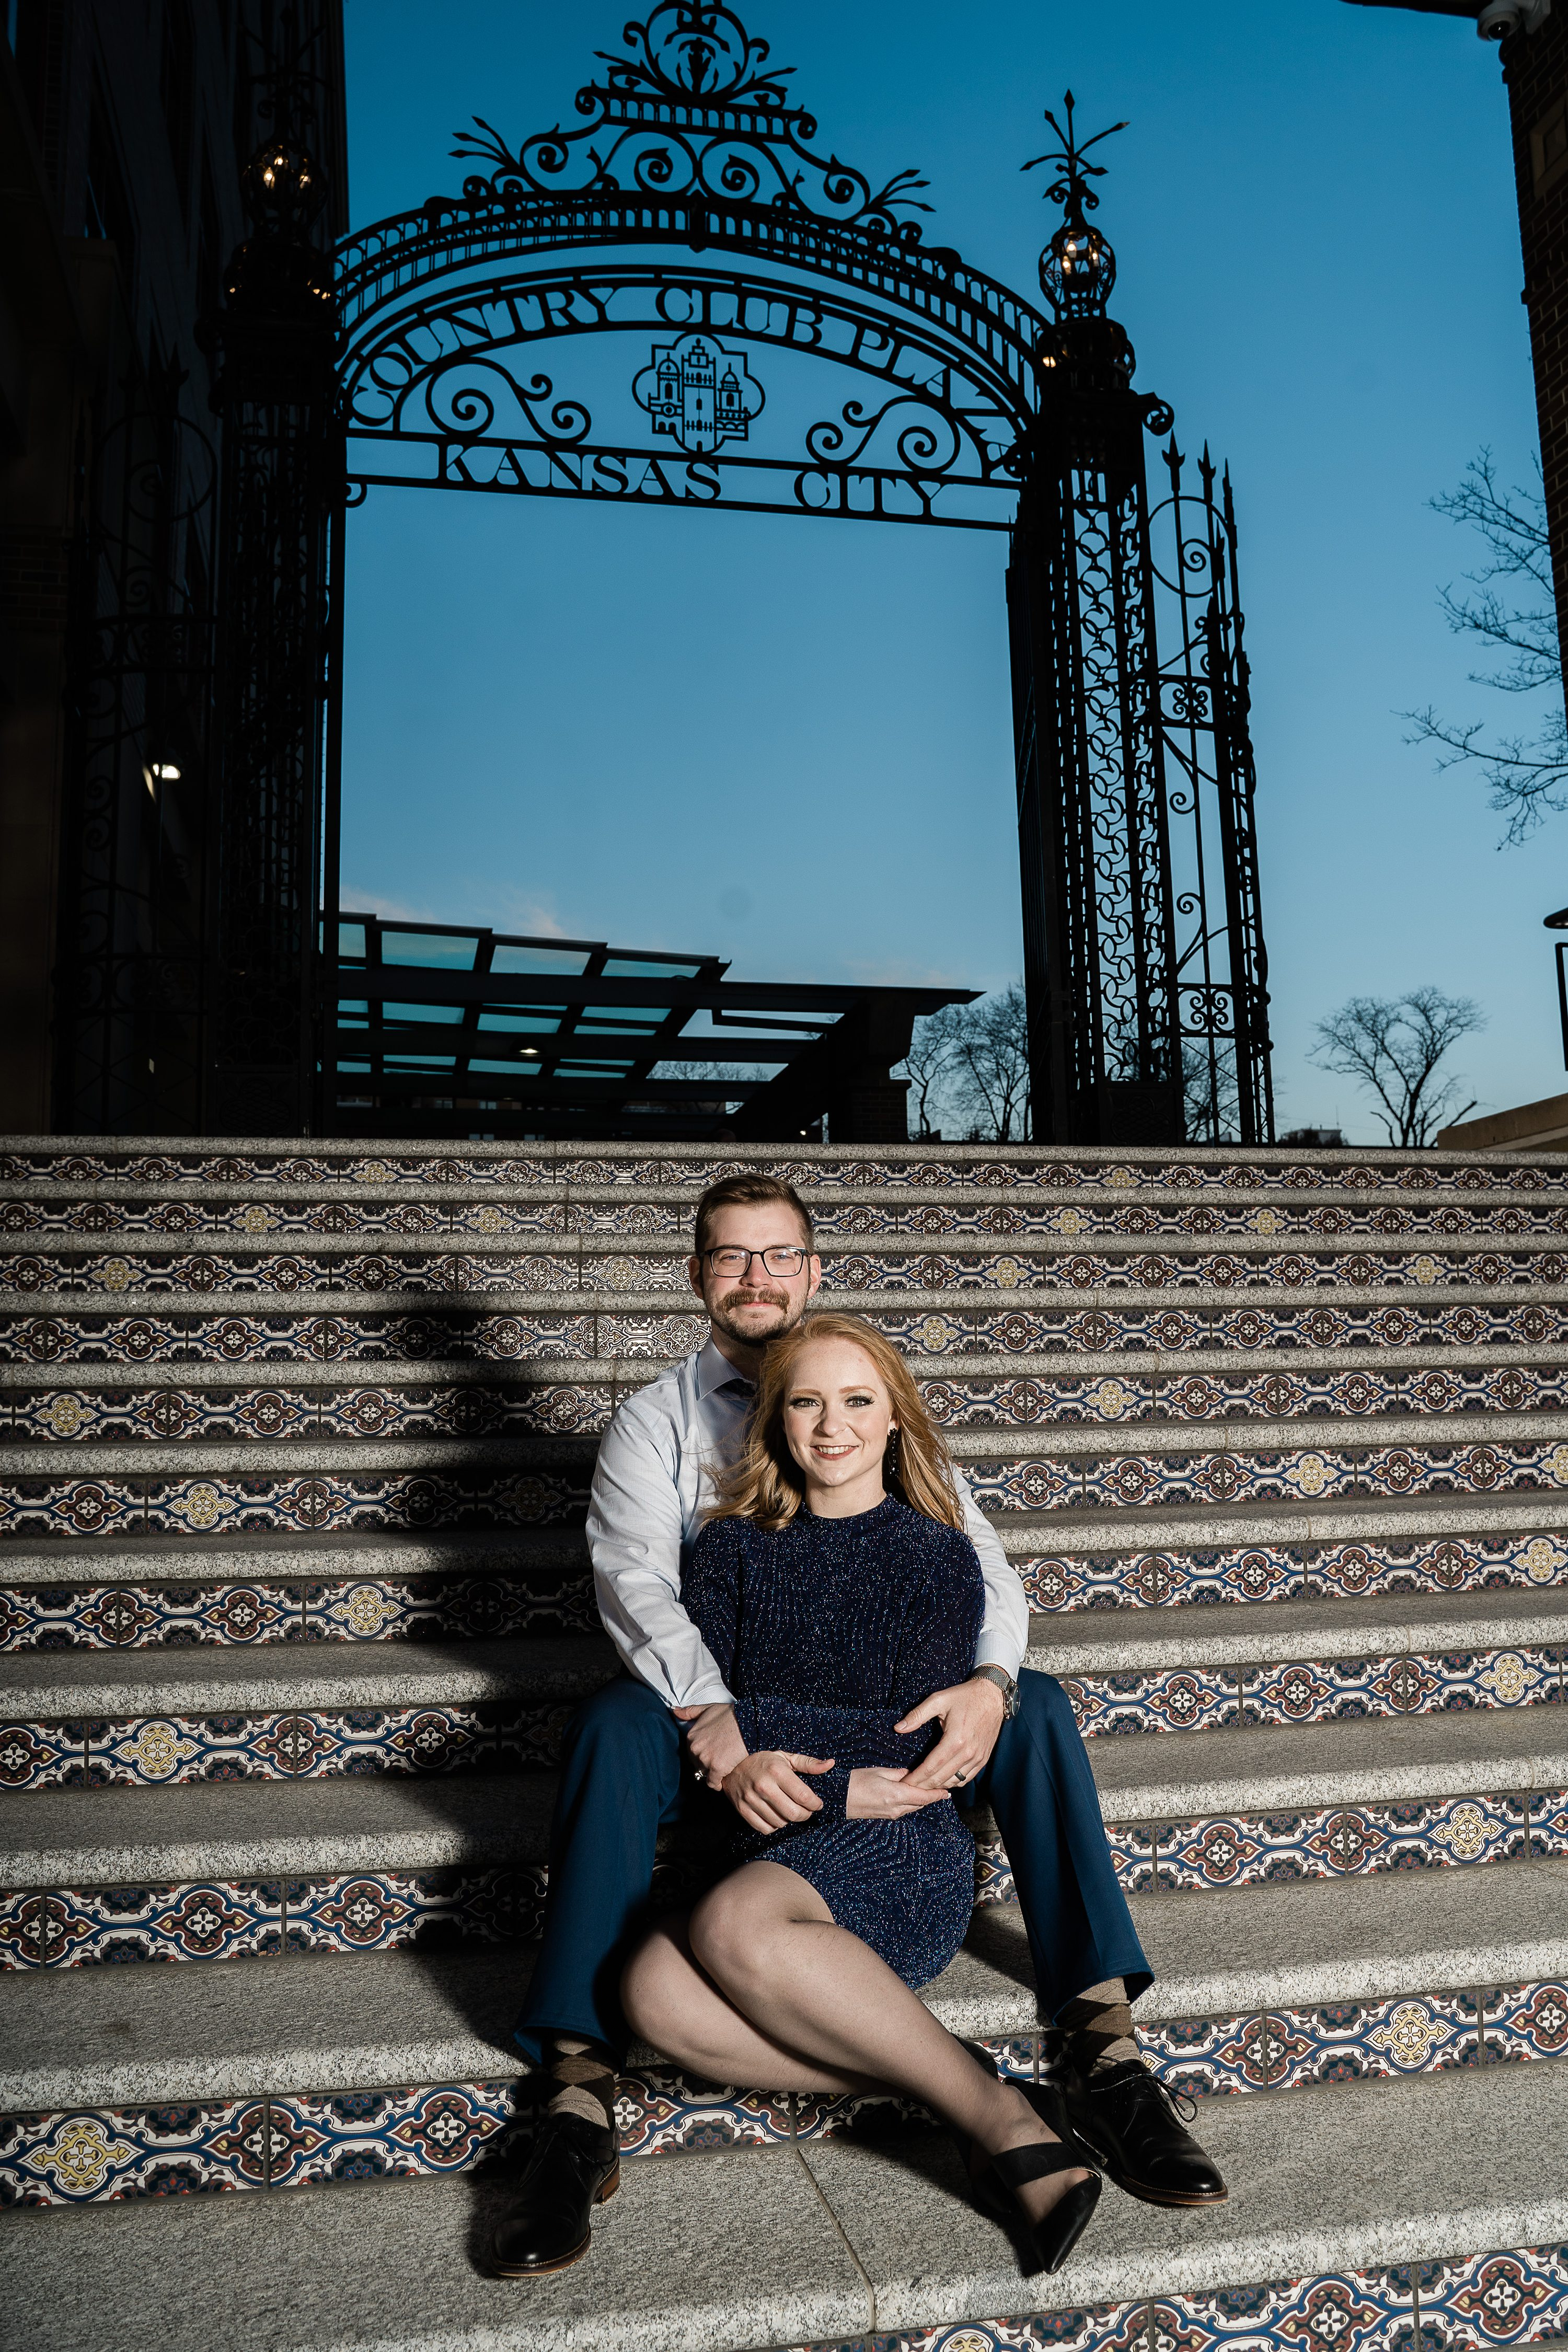 Shawnee Mission KS Photography,Couples Photography